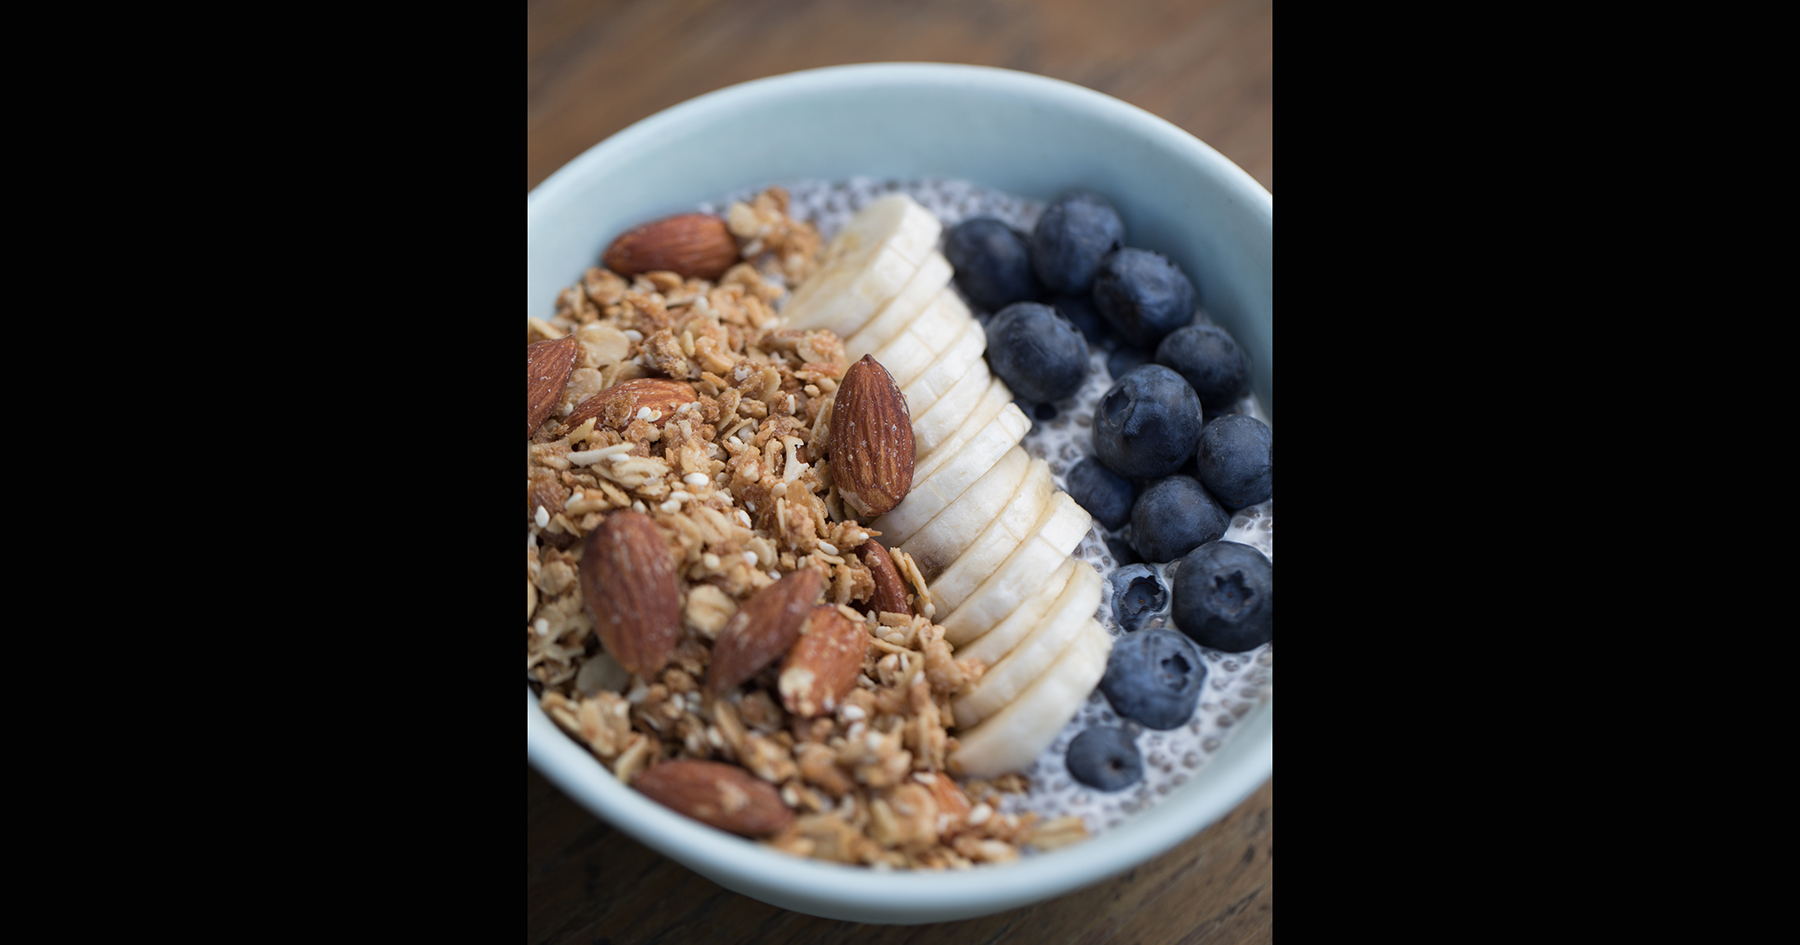 Chia Seed Pudding with Granola, Blueberries and Banana